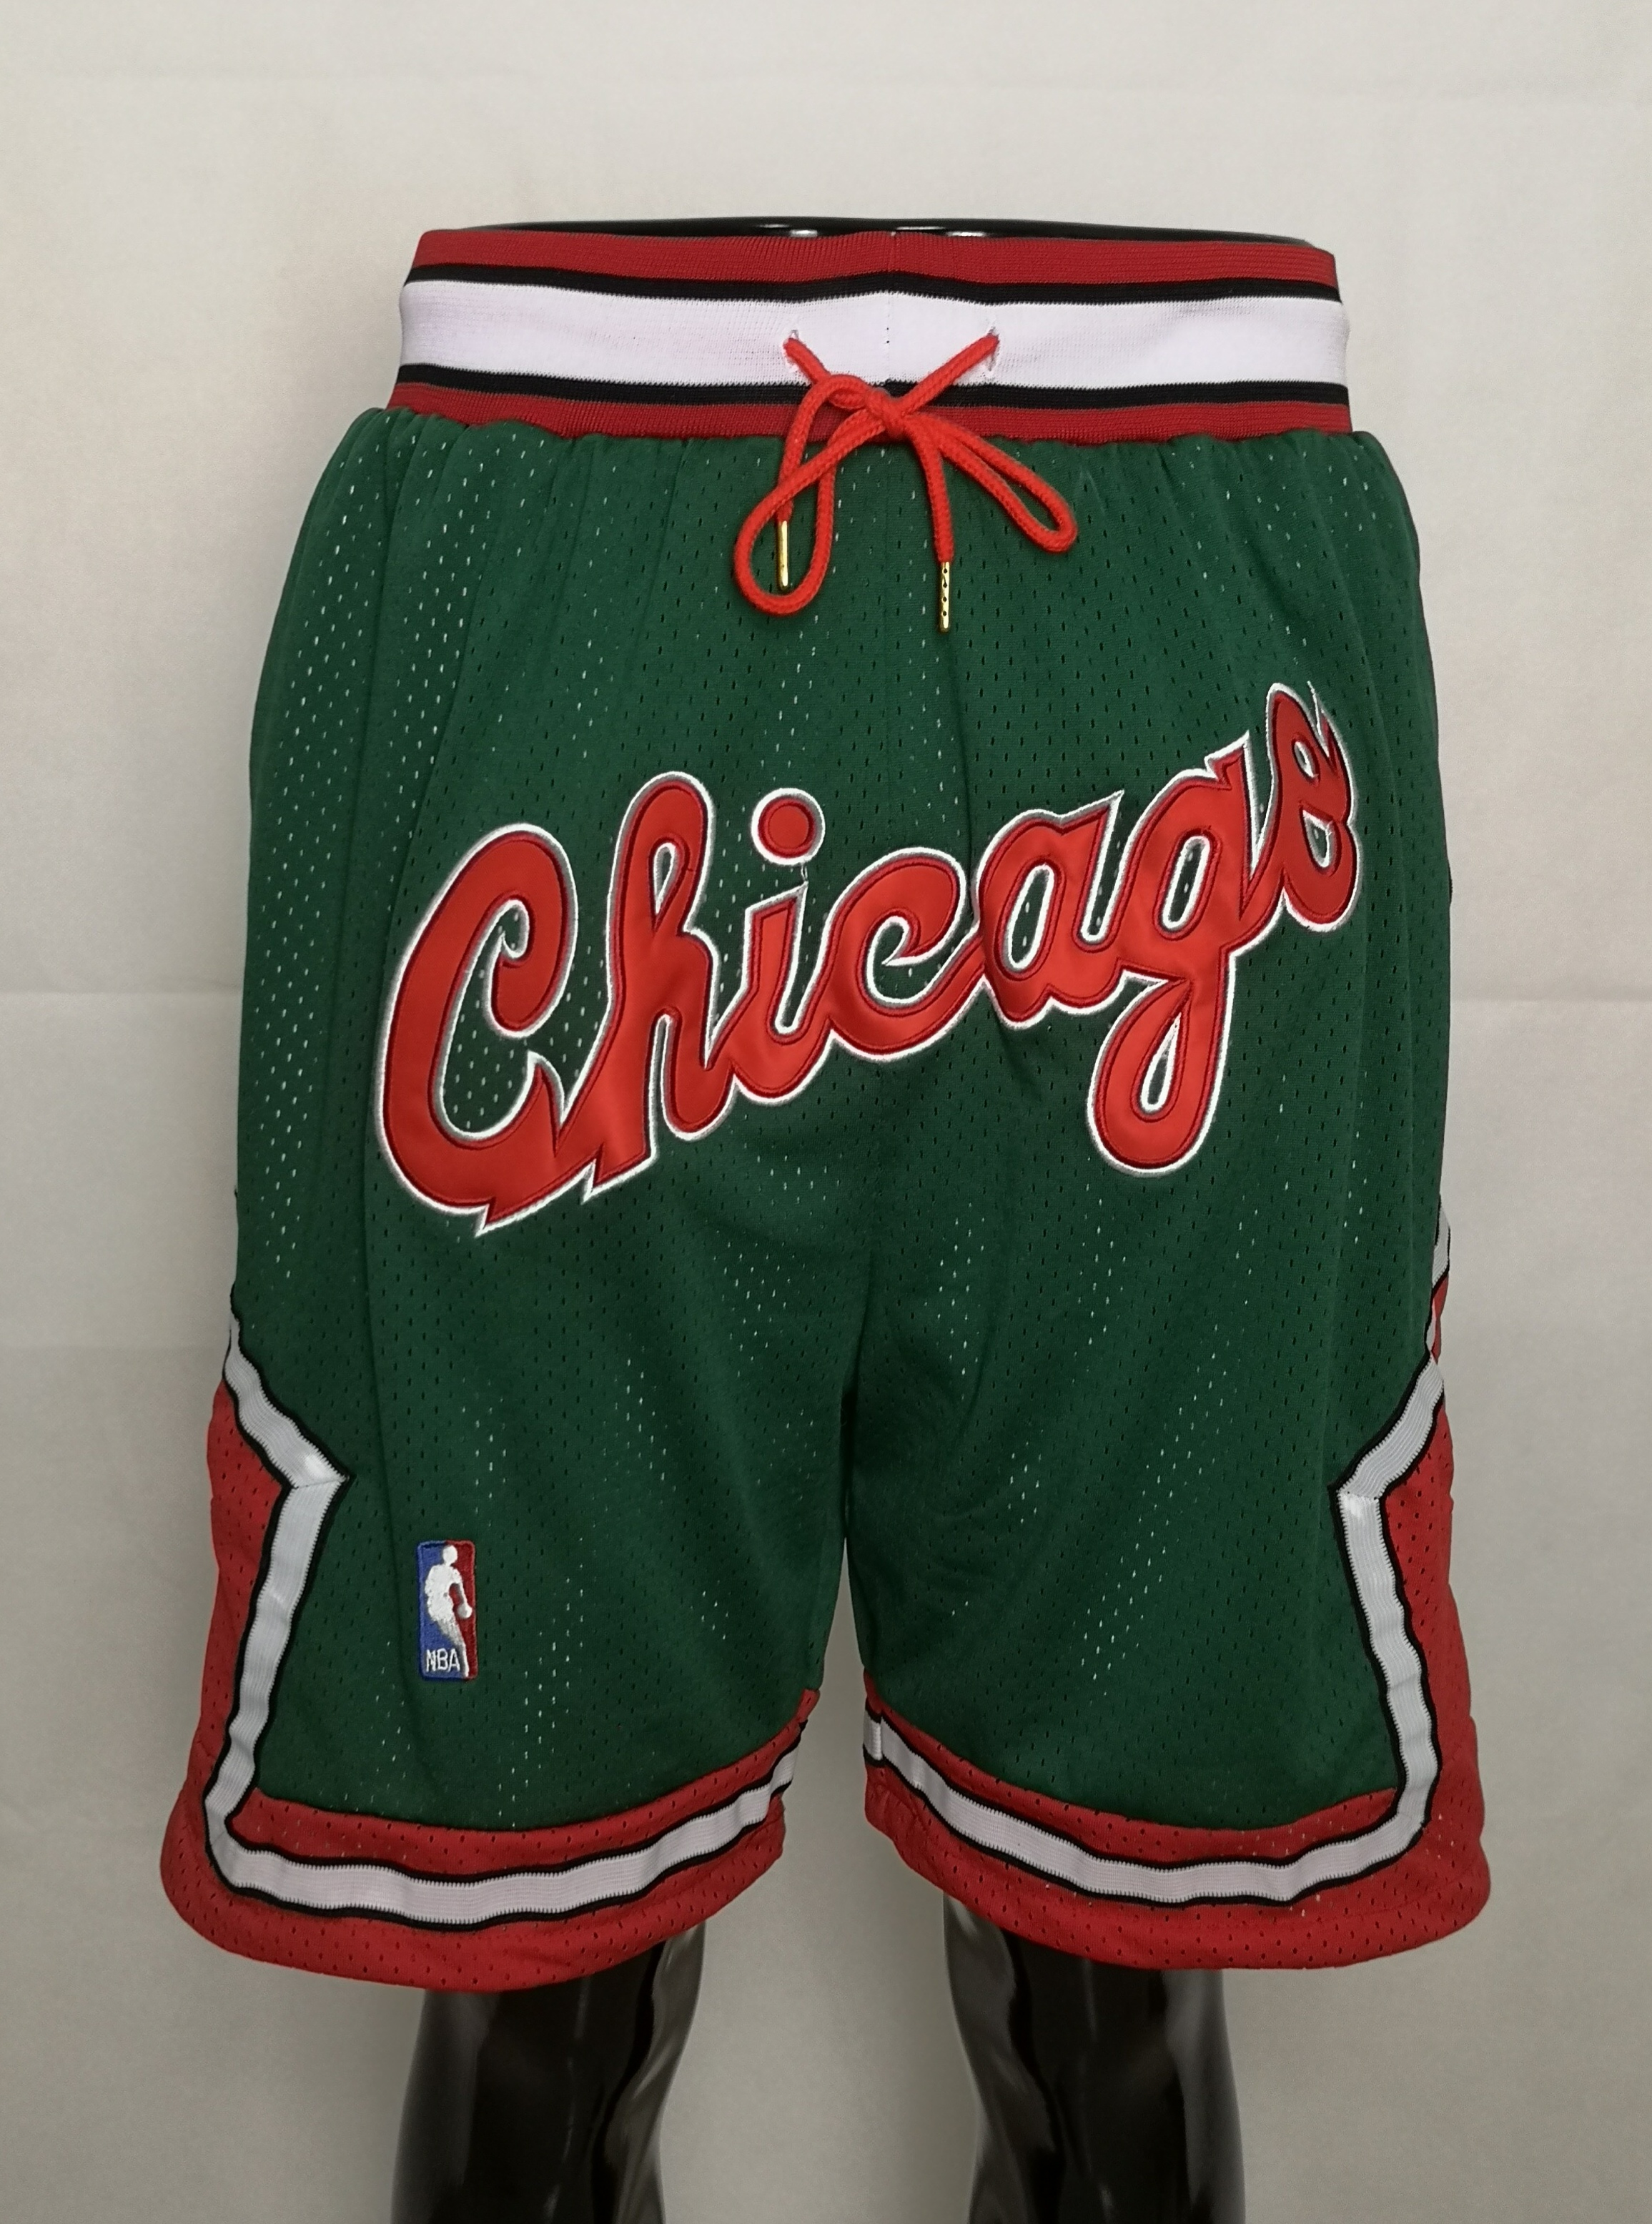 2020 Men NBA Chicago Bulls green shorts